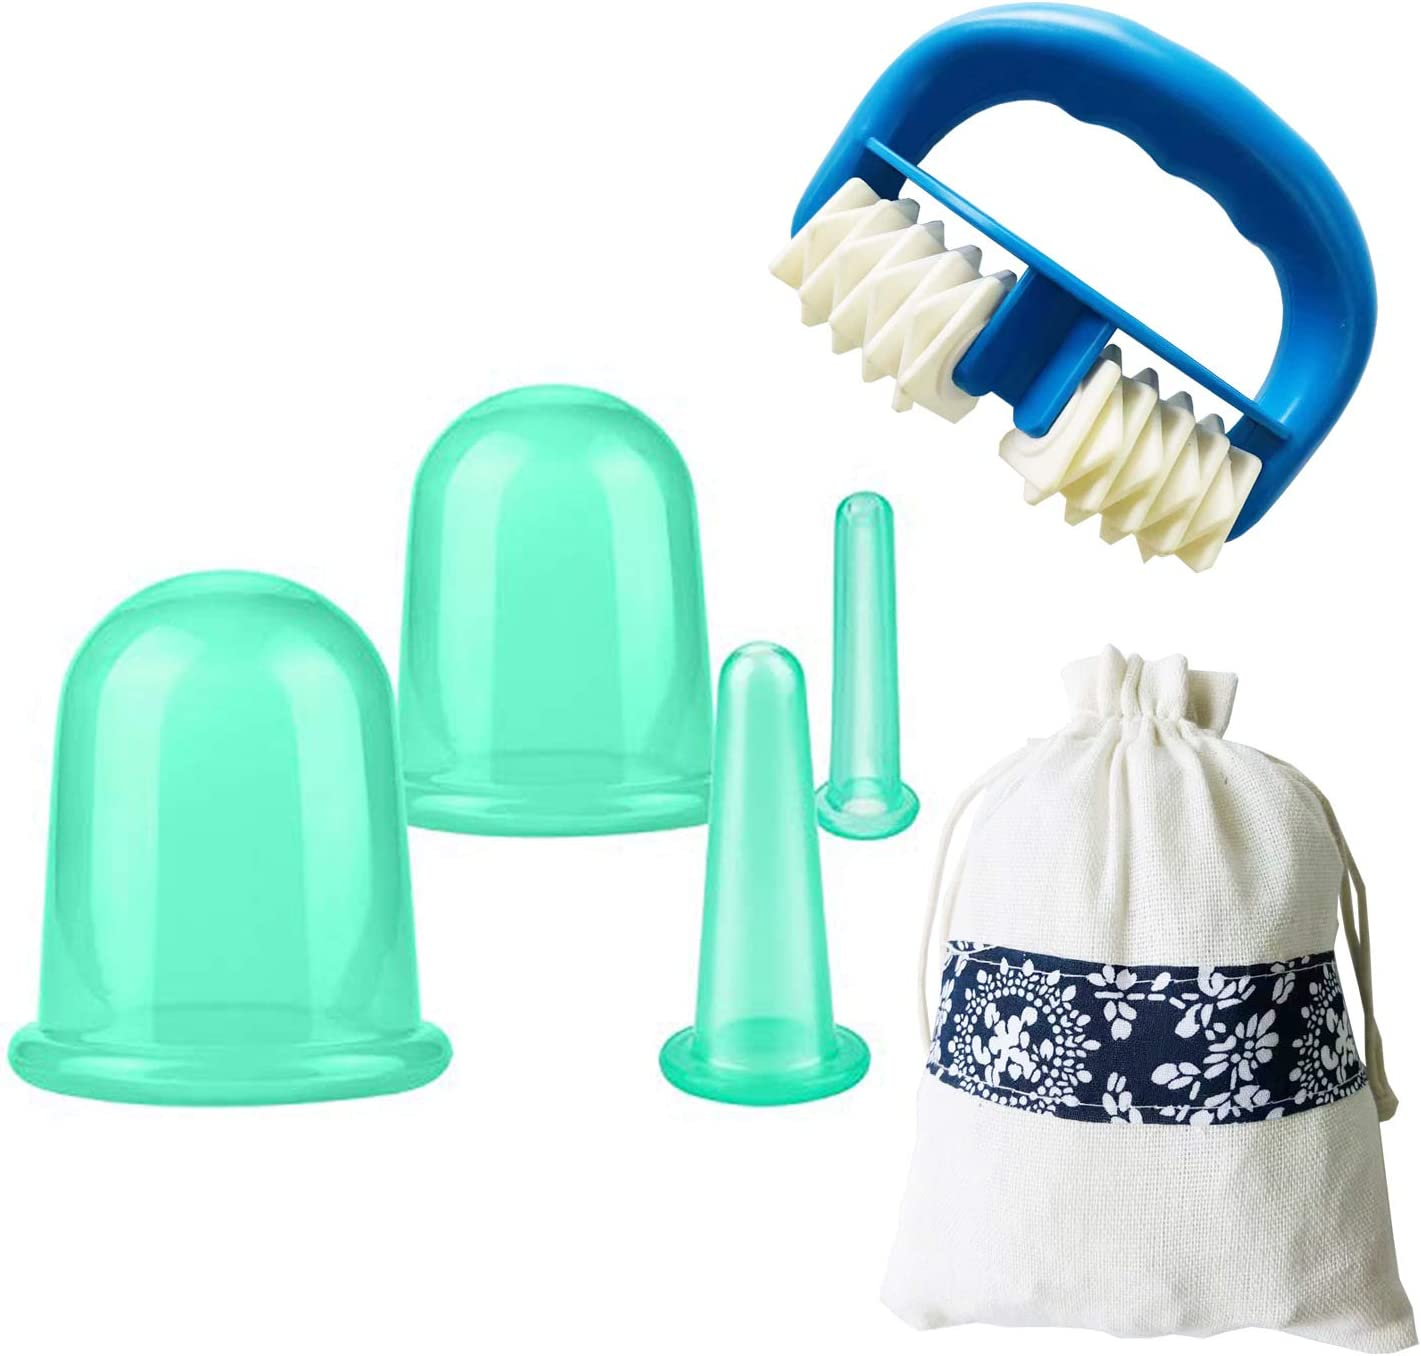 4 Cups Facial Cupping Set with Massage Roller SENREAL Silicone Cupping Therapy Kit Vacuum for Face Cupping Cups Facial Vacuum Massage Cup Kit for Muscle, Nerve, Joint Pain Relief (Green)